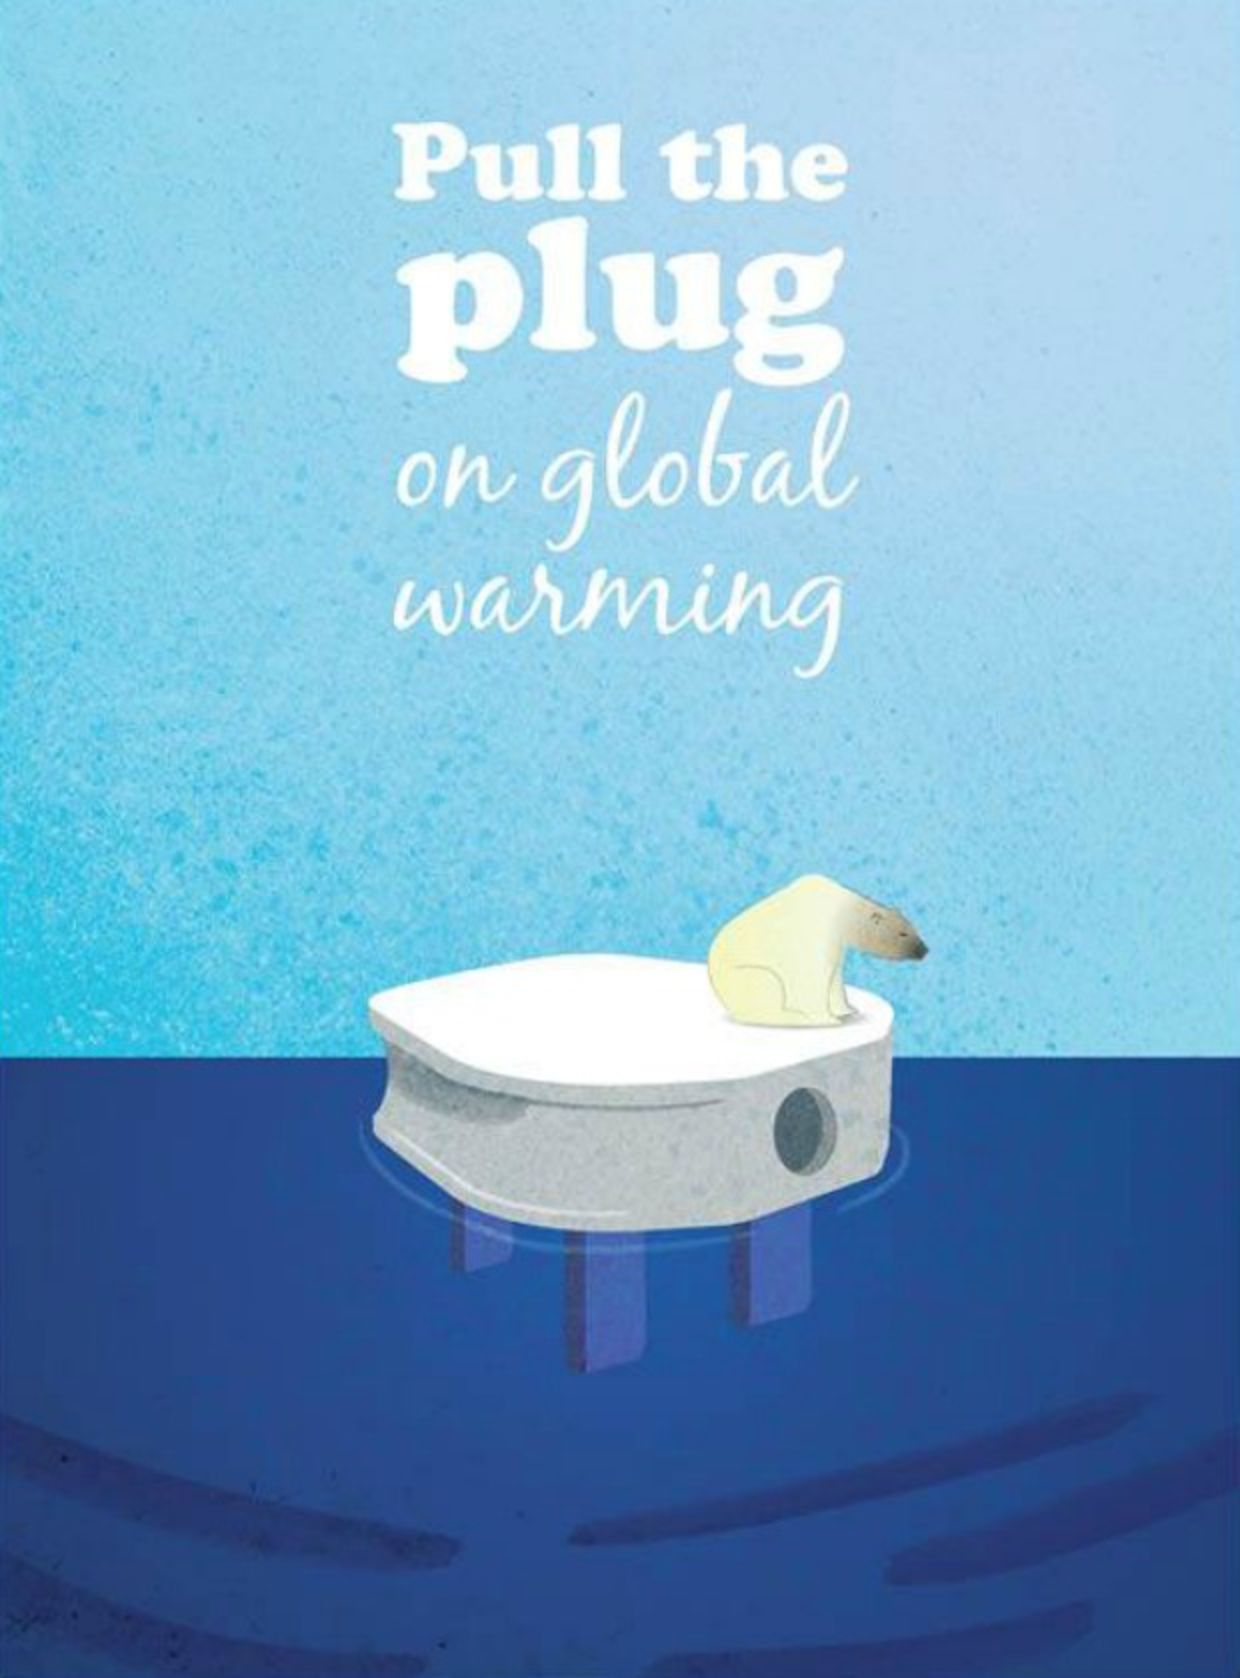 Pull the Plug by Matt Dyson and Jon Oakes